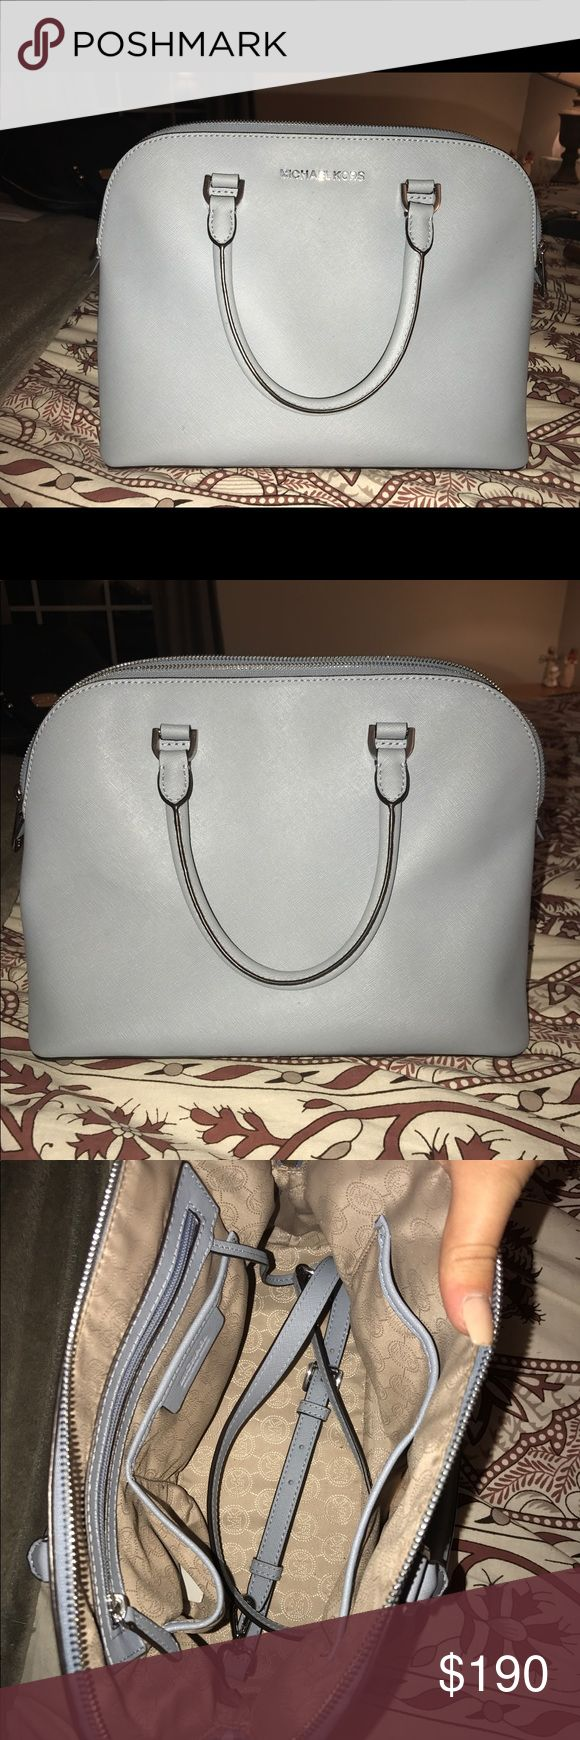 Michael Kors Satchel with Strap New without tags. Used once! Size medium. Non smoking home Michael Kors Bags Satchels